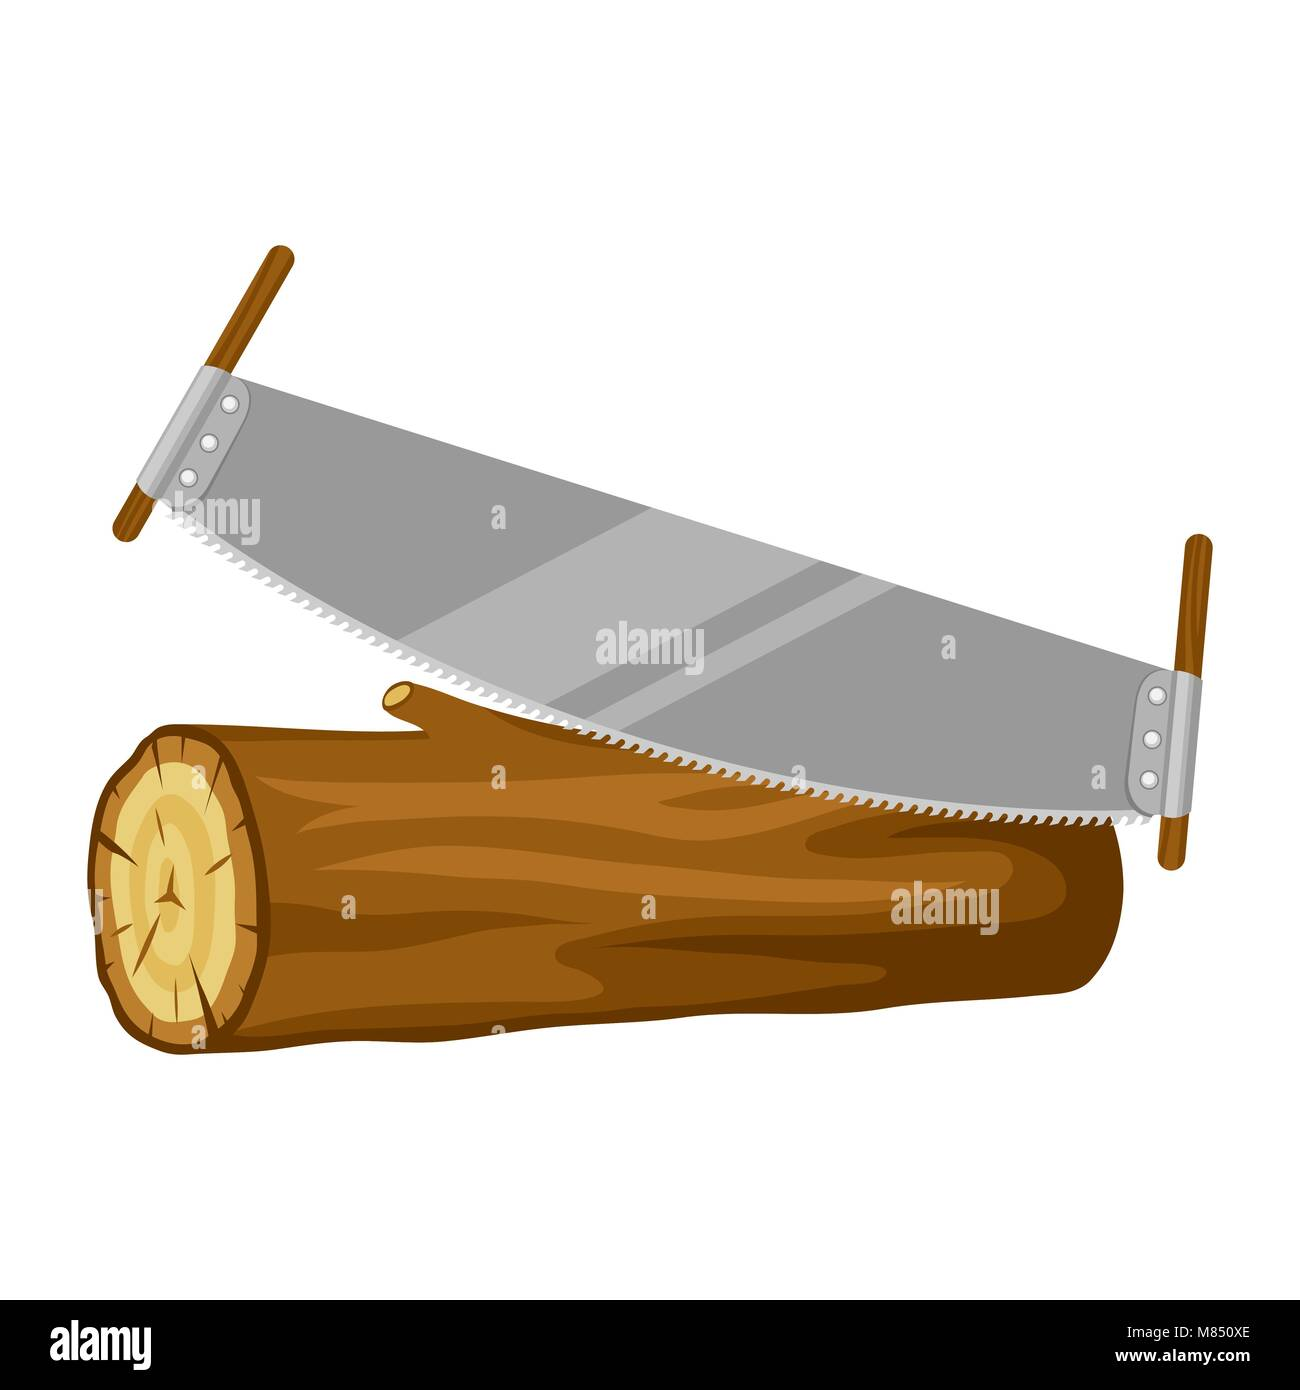 Saw and wood log. Illustration for forestry and lumber industry - Stock Image